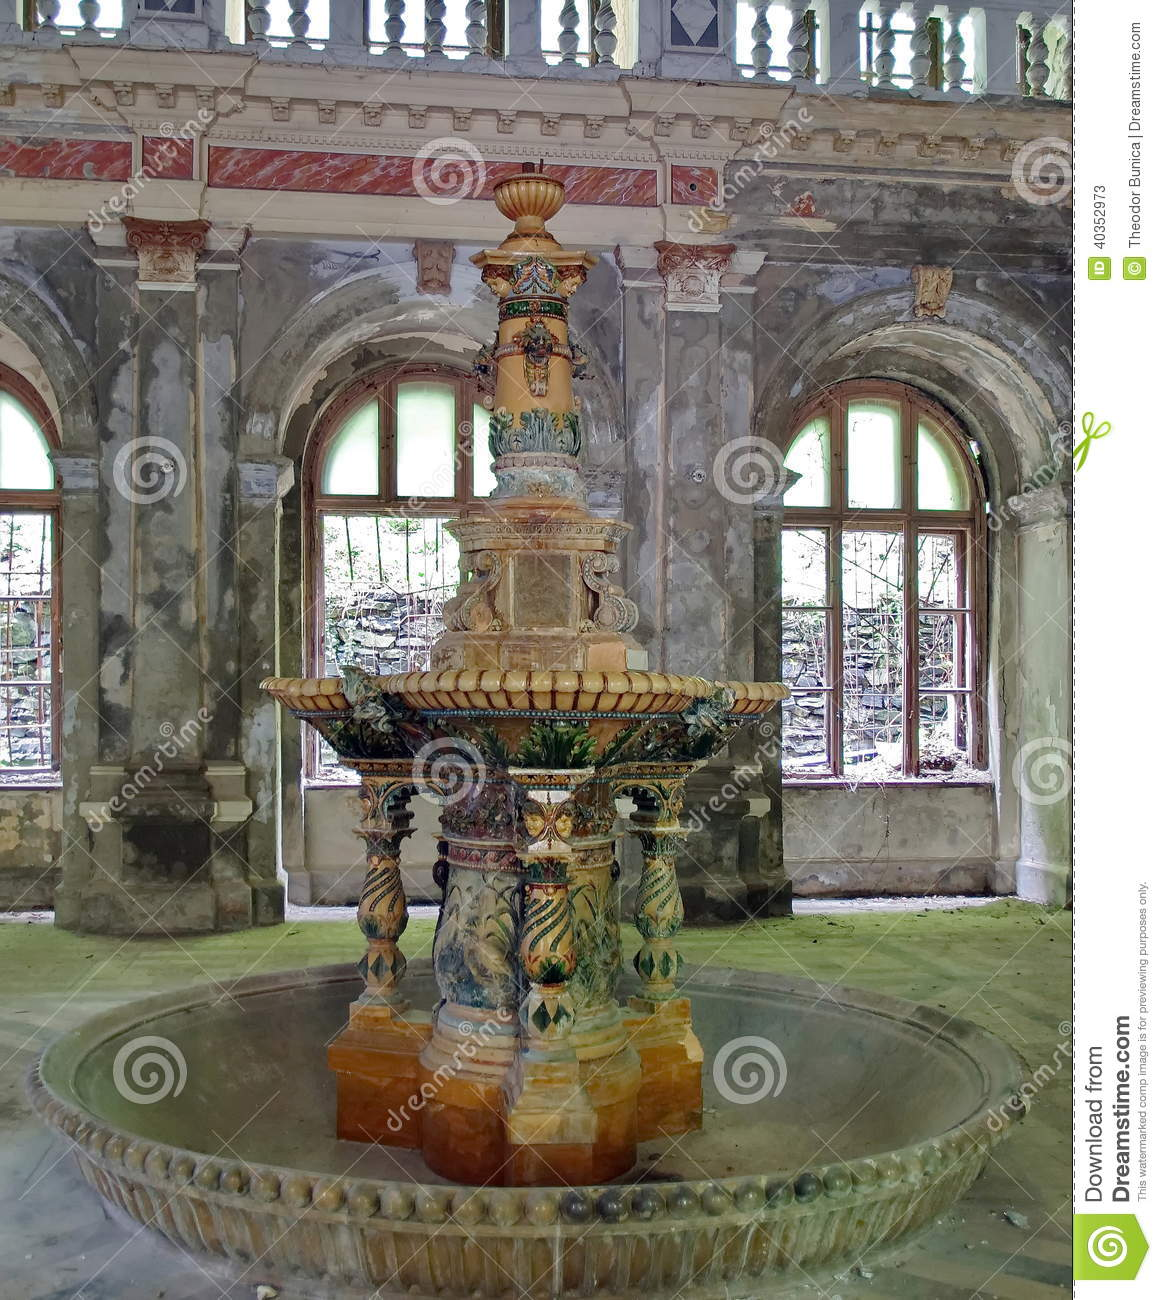 Fontaine du 19 me si cle baile herculane roumanie for Interieur 19eme siecle